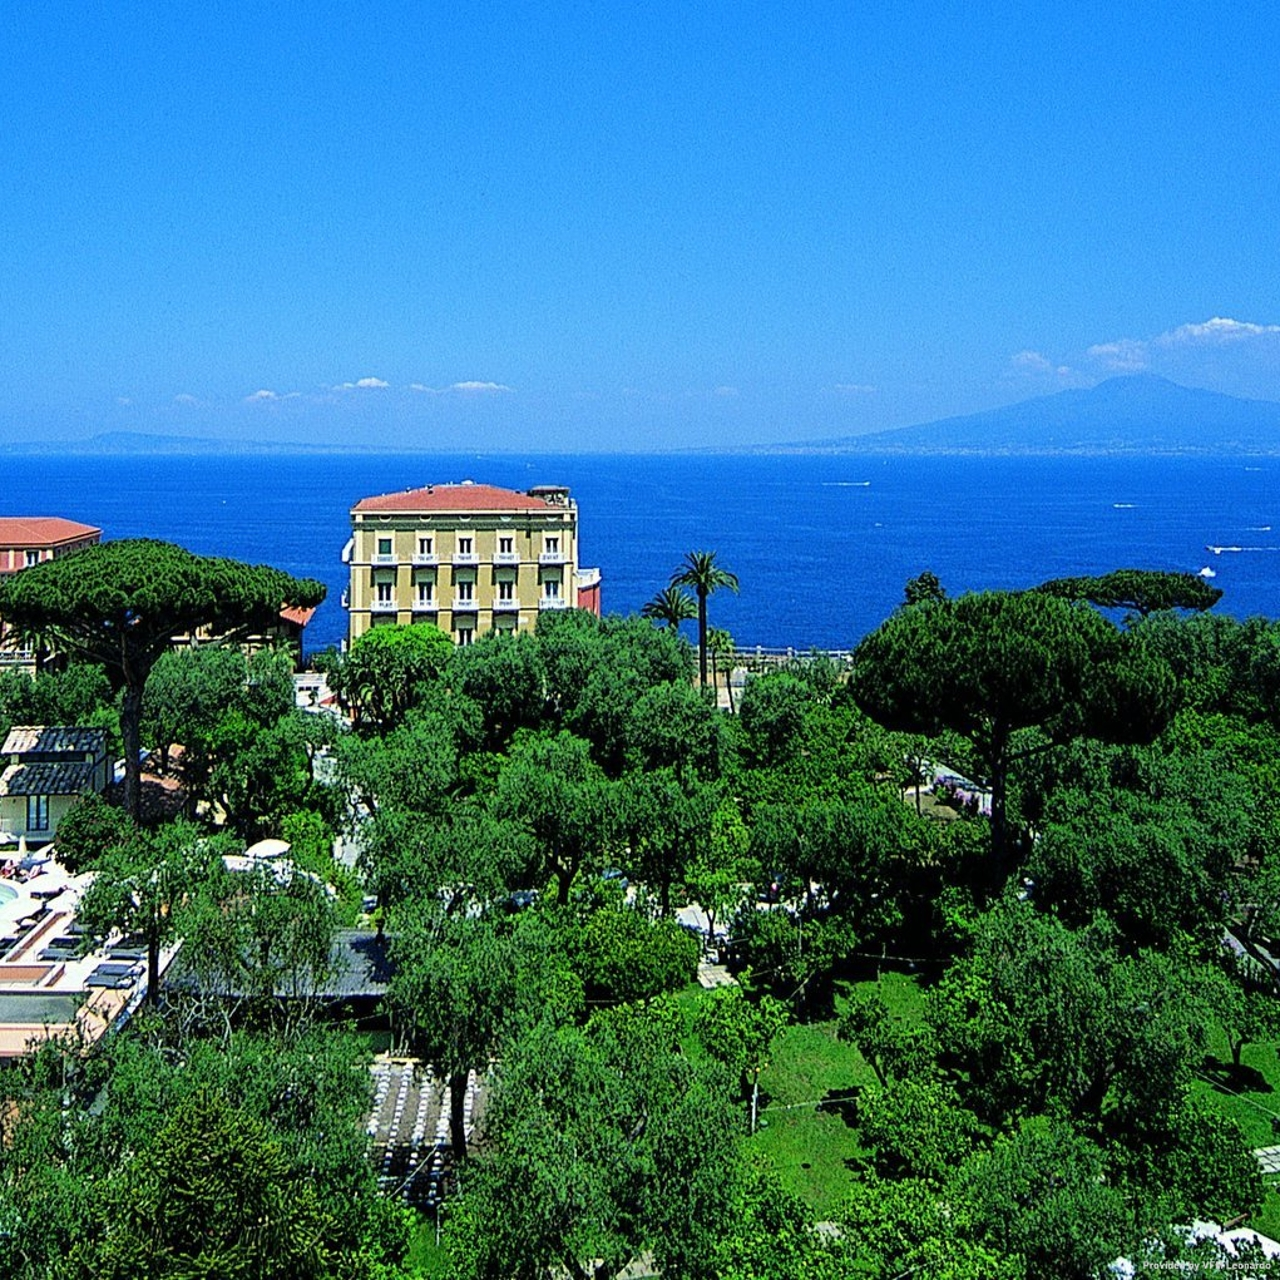 Grand Hotel Excelsior Vittoria Italy At Hrs With Free Services